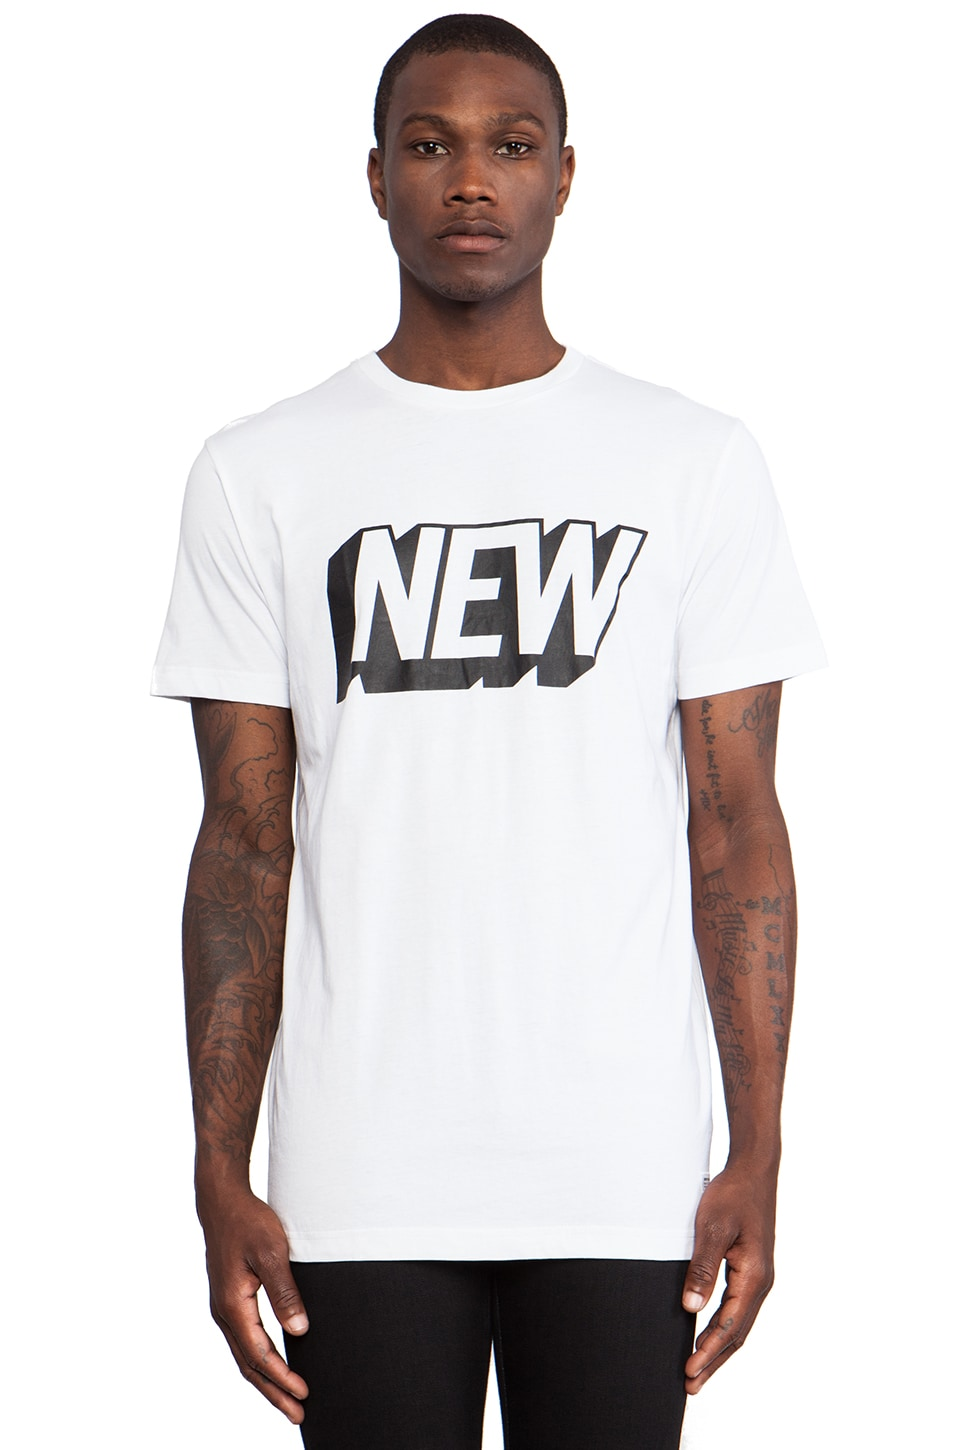 Stampd New Tee in White